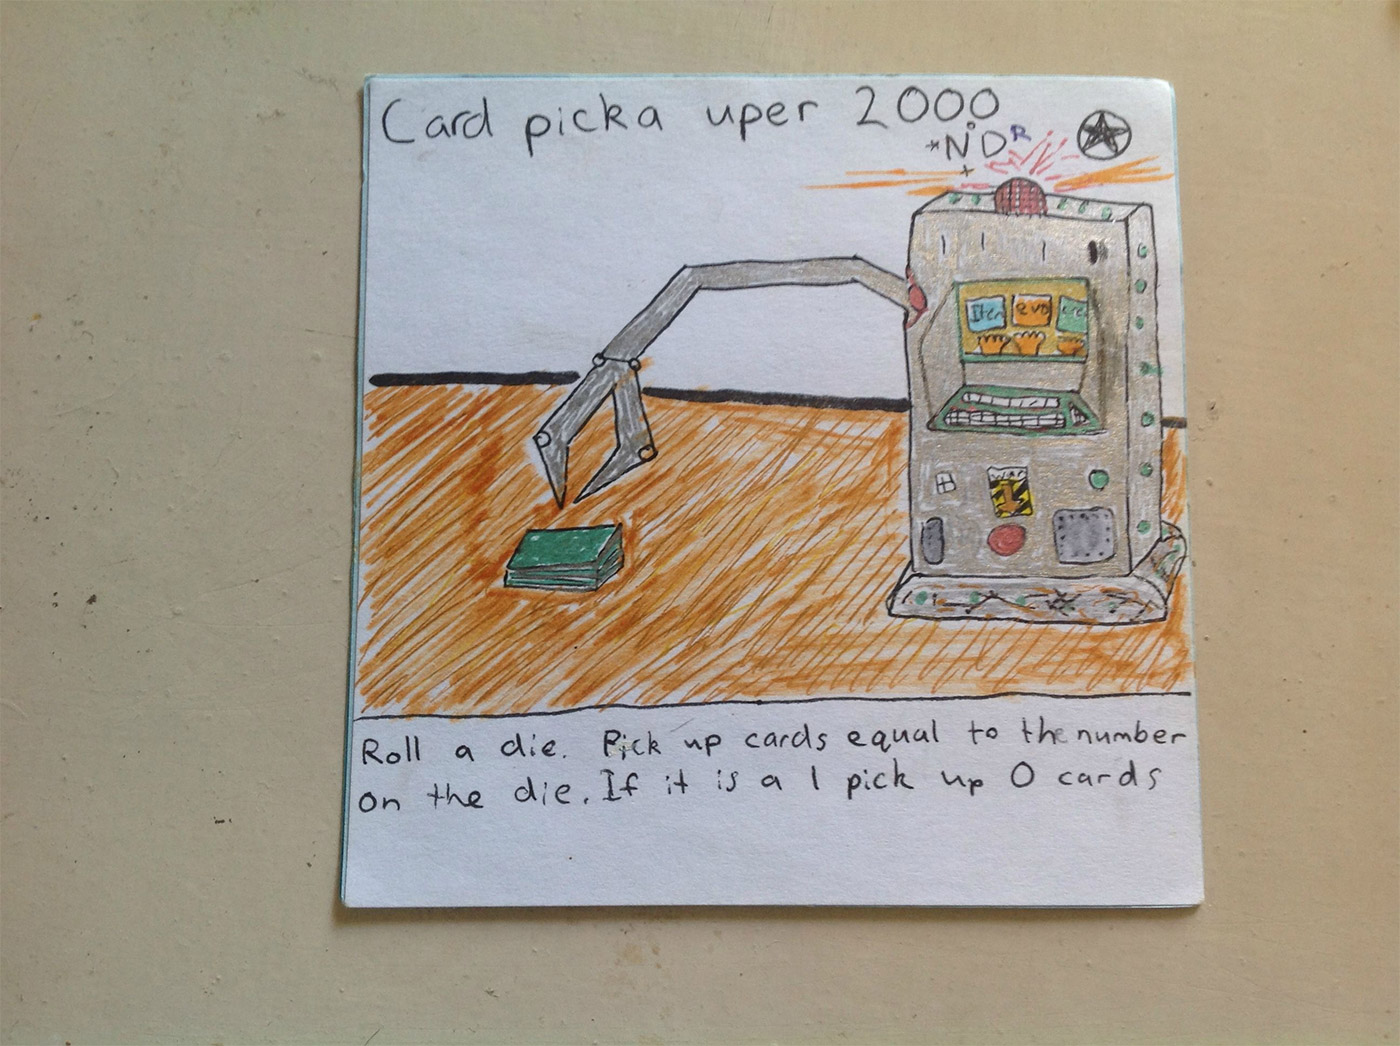 Handdrawn Playing Cards: Picka-uper-2000